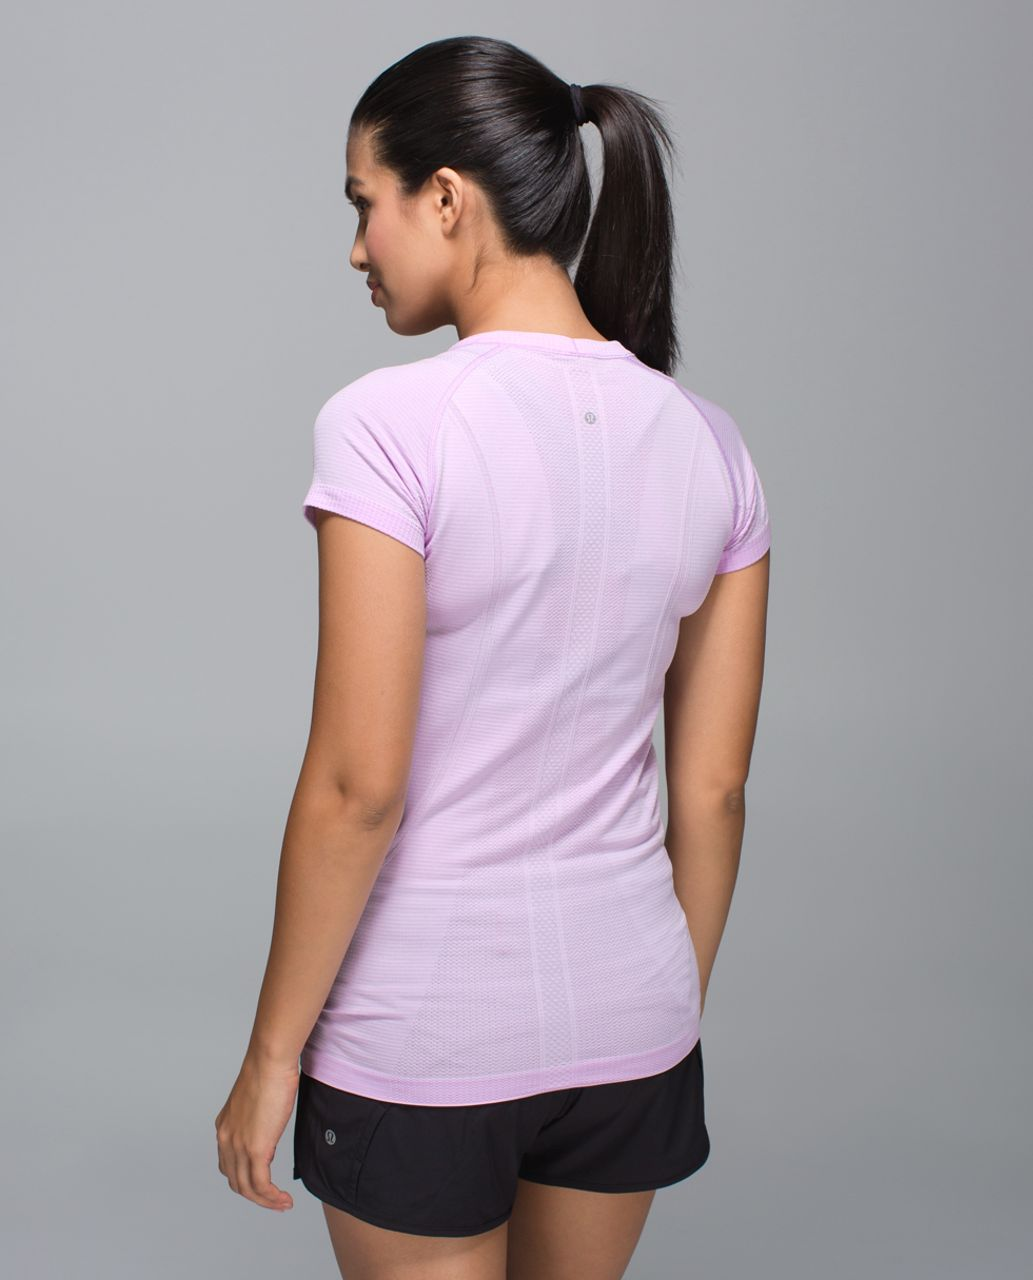 Lululemon Swiftly Tech Short Sleeve Crew - Heathered Pretty Purple